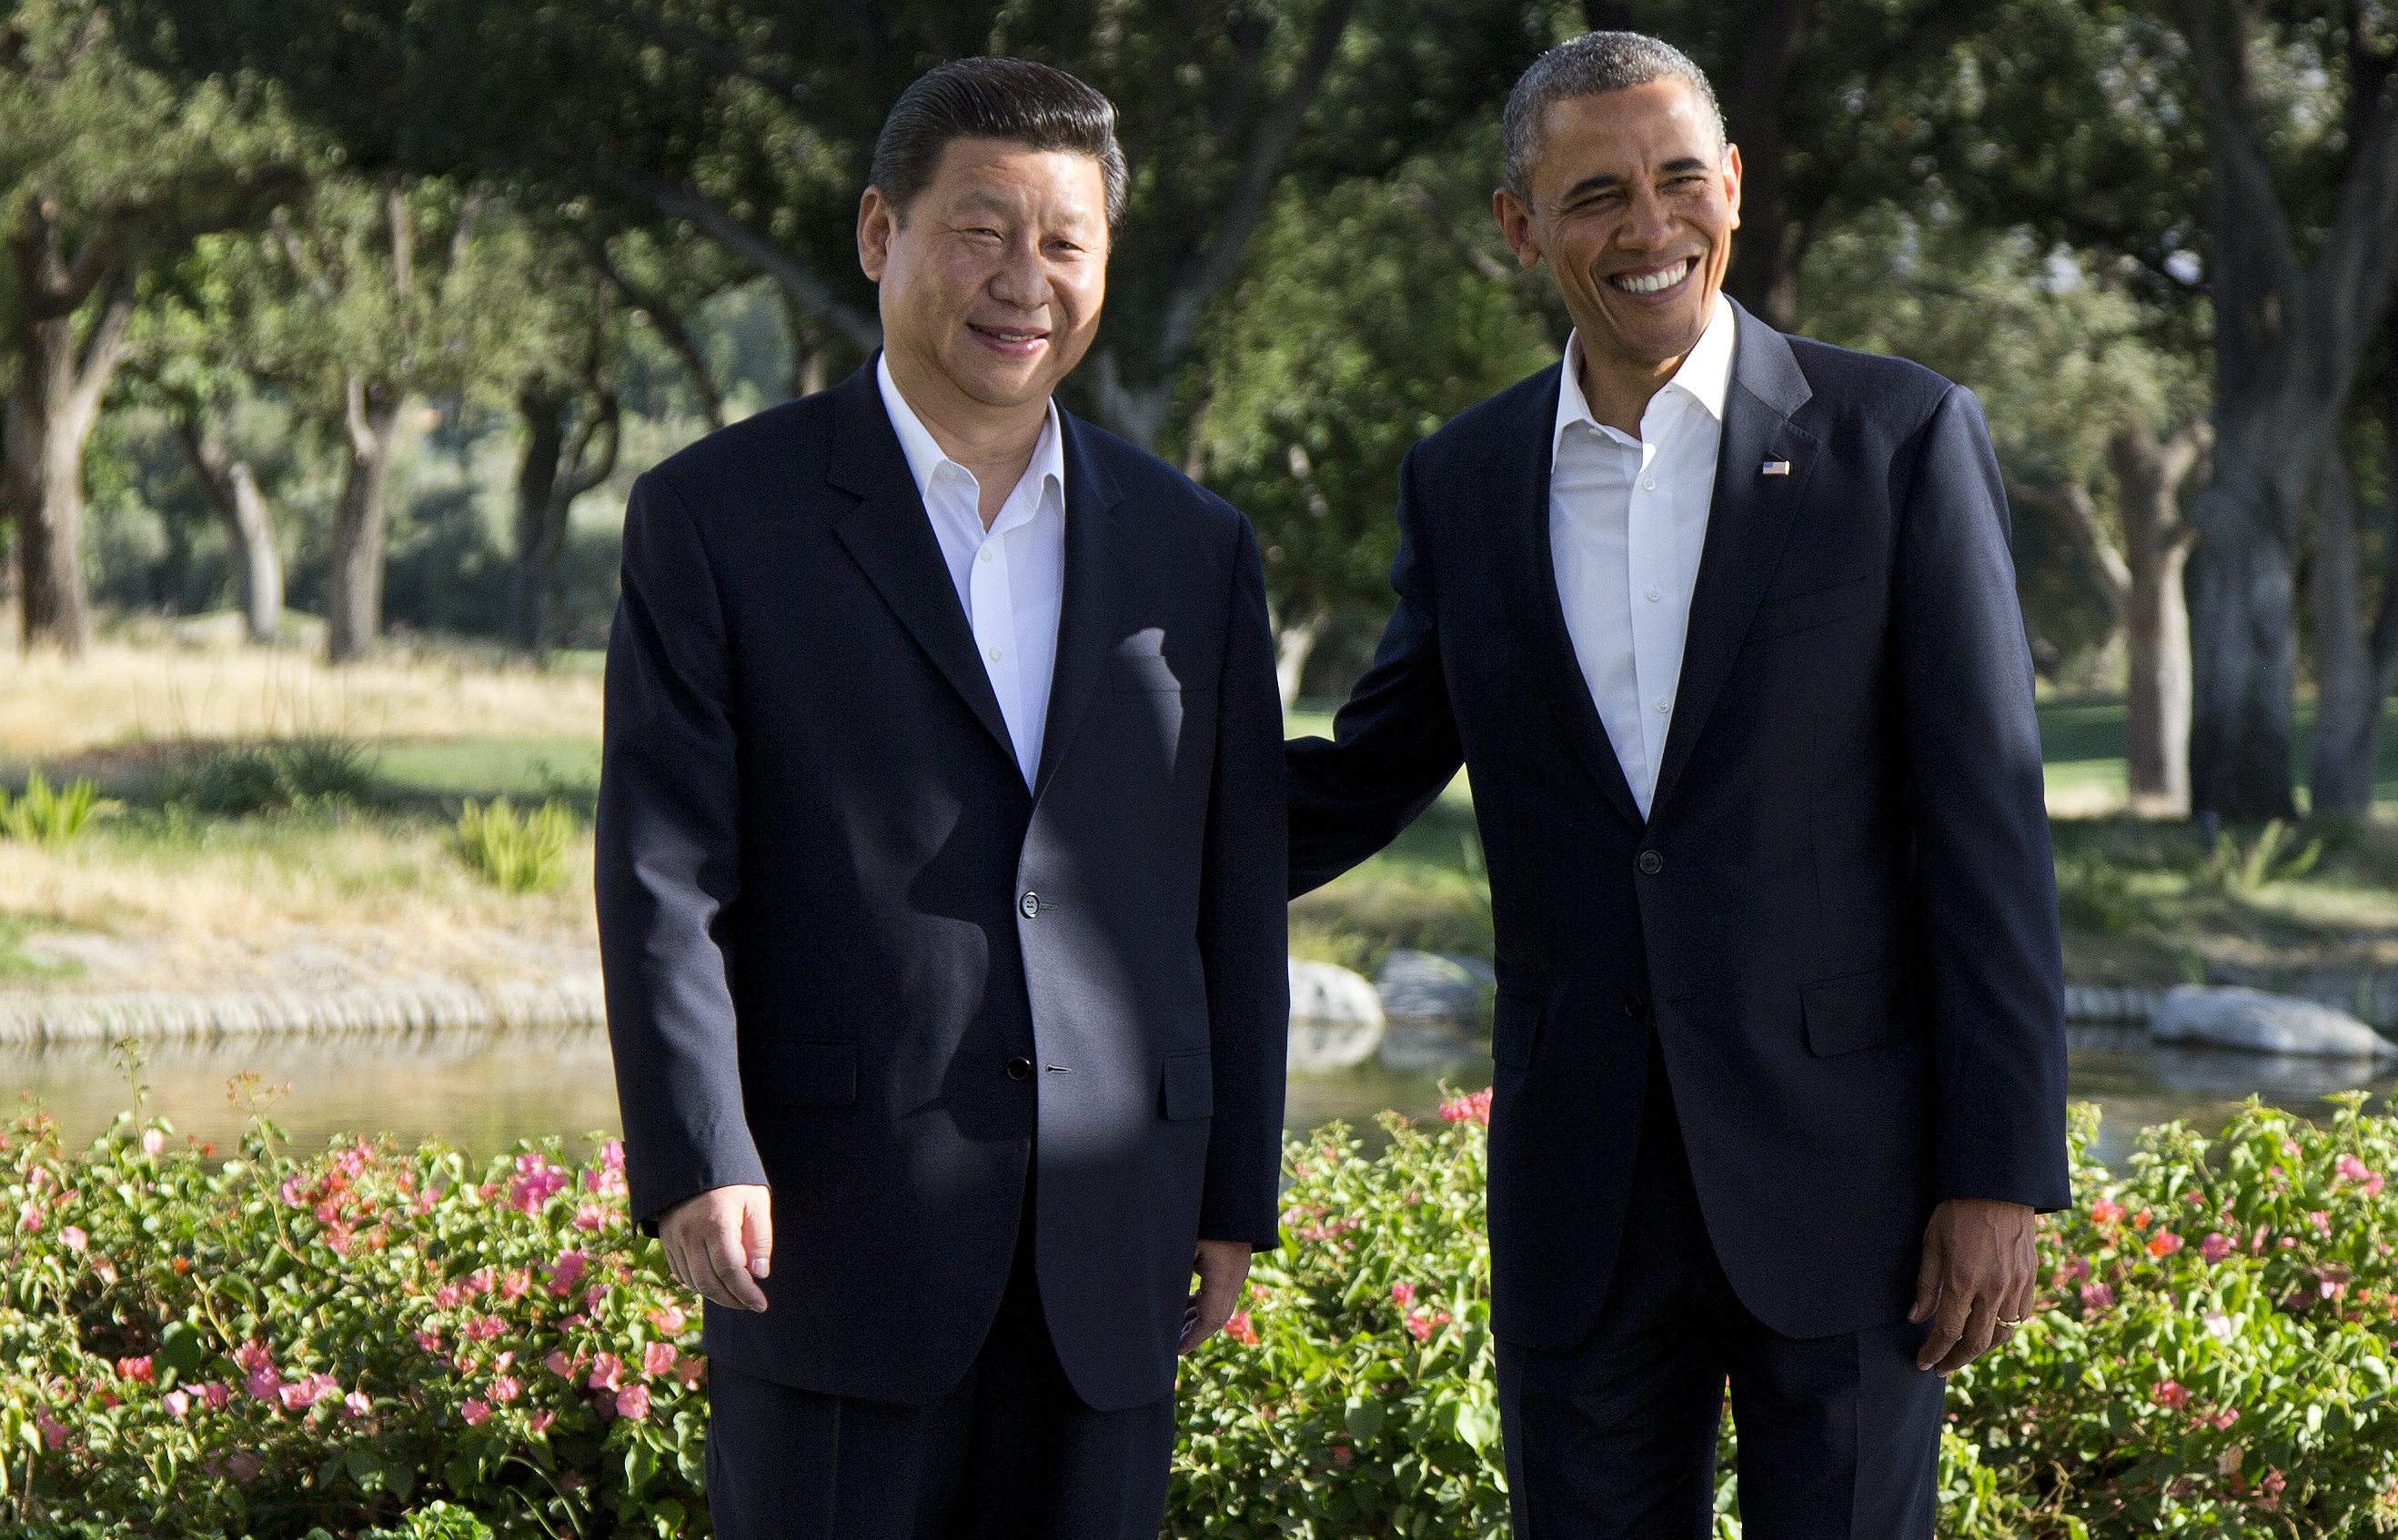 FILE - In this Friday, June 7, 2013, file photo, President Barack Obama poses with Chinese President Xi Jinping at the Annenberg Retreat at Sunnylands as they meet for talks in Rancho Mirage, Calif. Seeking a fresh start to a complex relationship, the two leaders are retreating to the sprawling desert estate for two days of talks on high-stakes issues, including cybersecurity and North Korea's nuclear threats. (AP Photo/Evan Vucci, File)